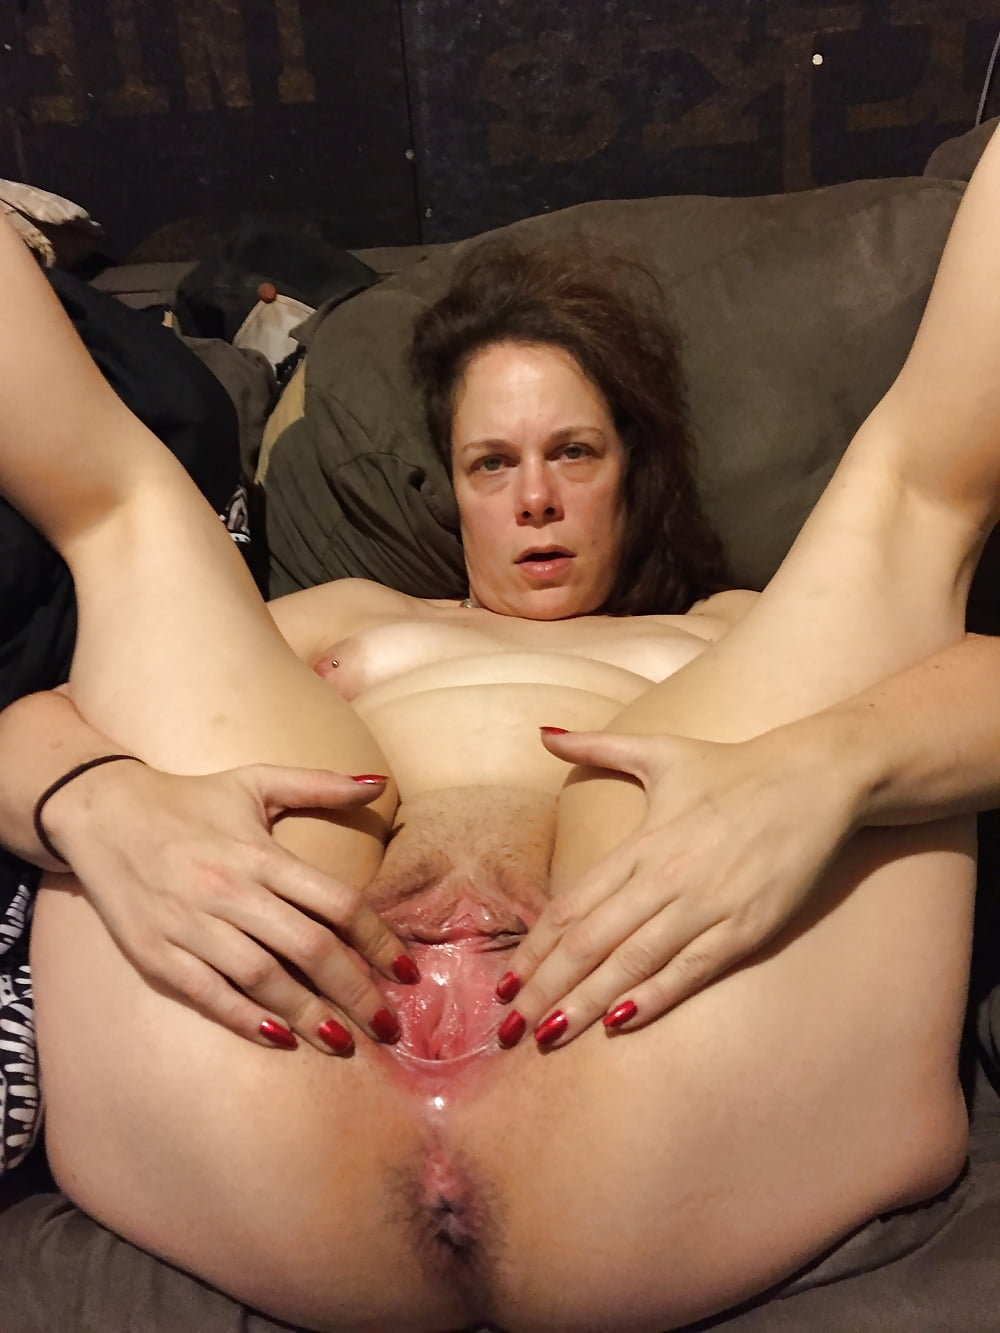 She loves to suck and fuck